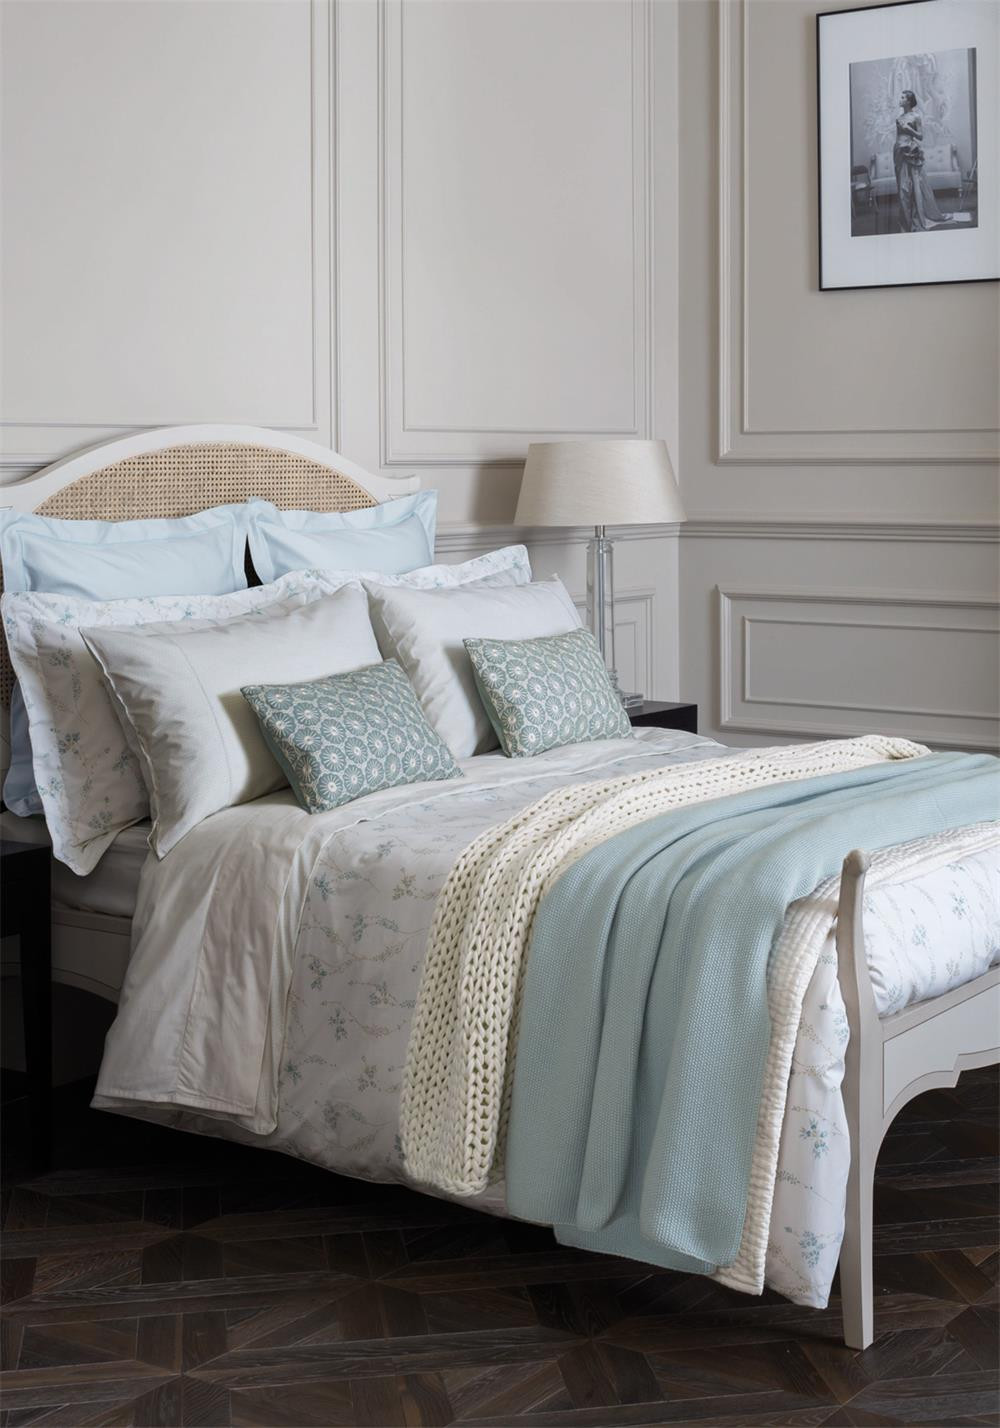 Fable Kassia Duvet Cover, Duck Egg